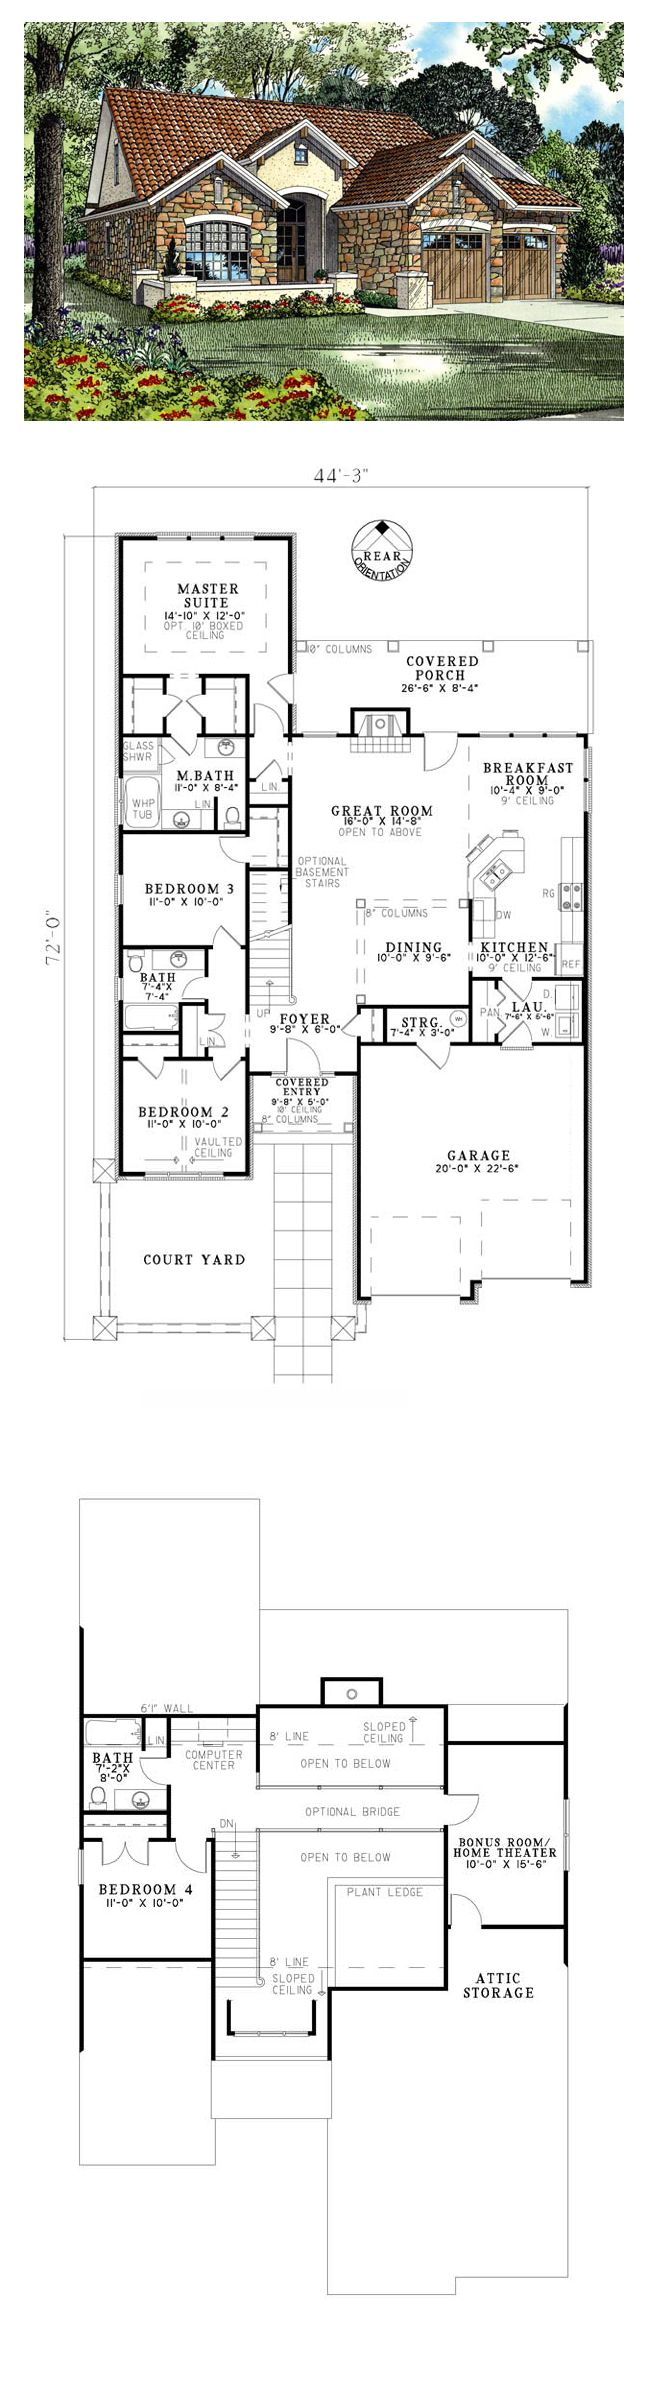 171 best House plans images on Pinterest